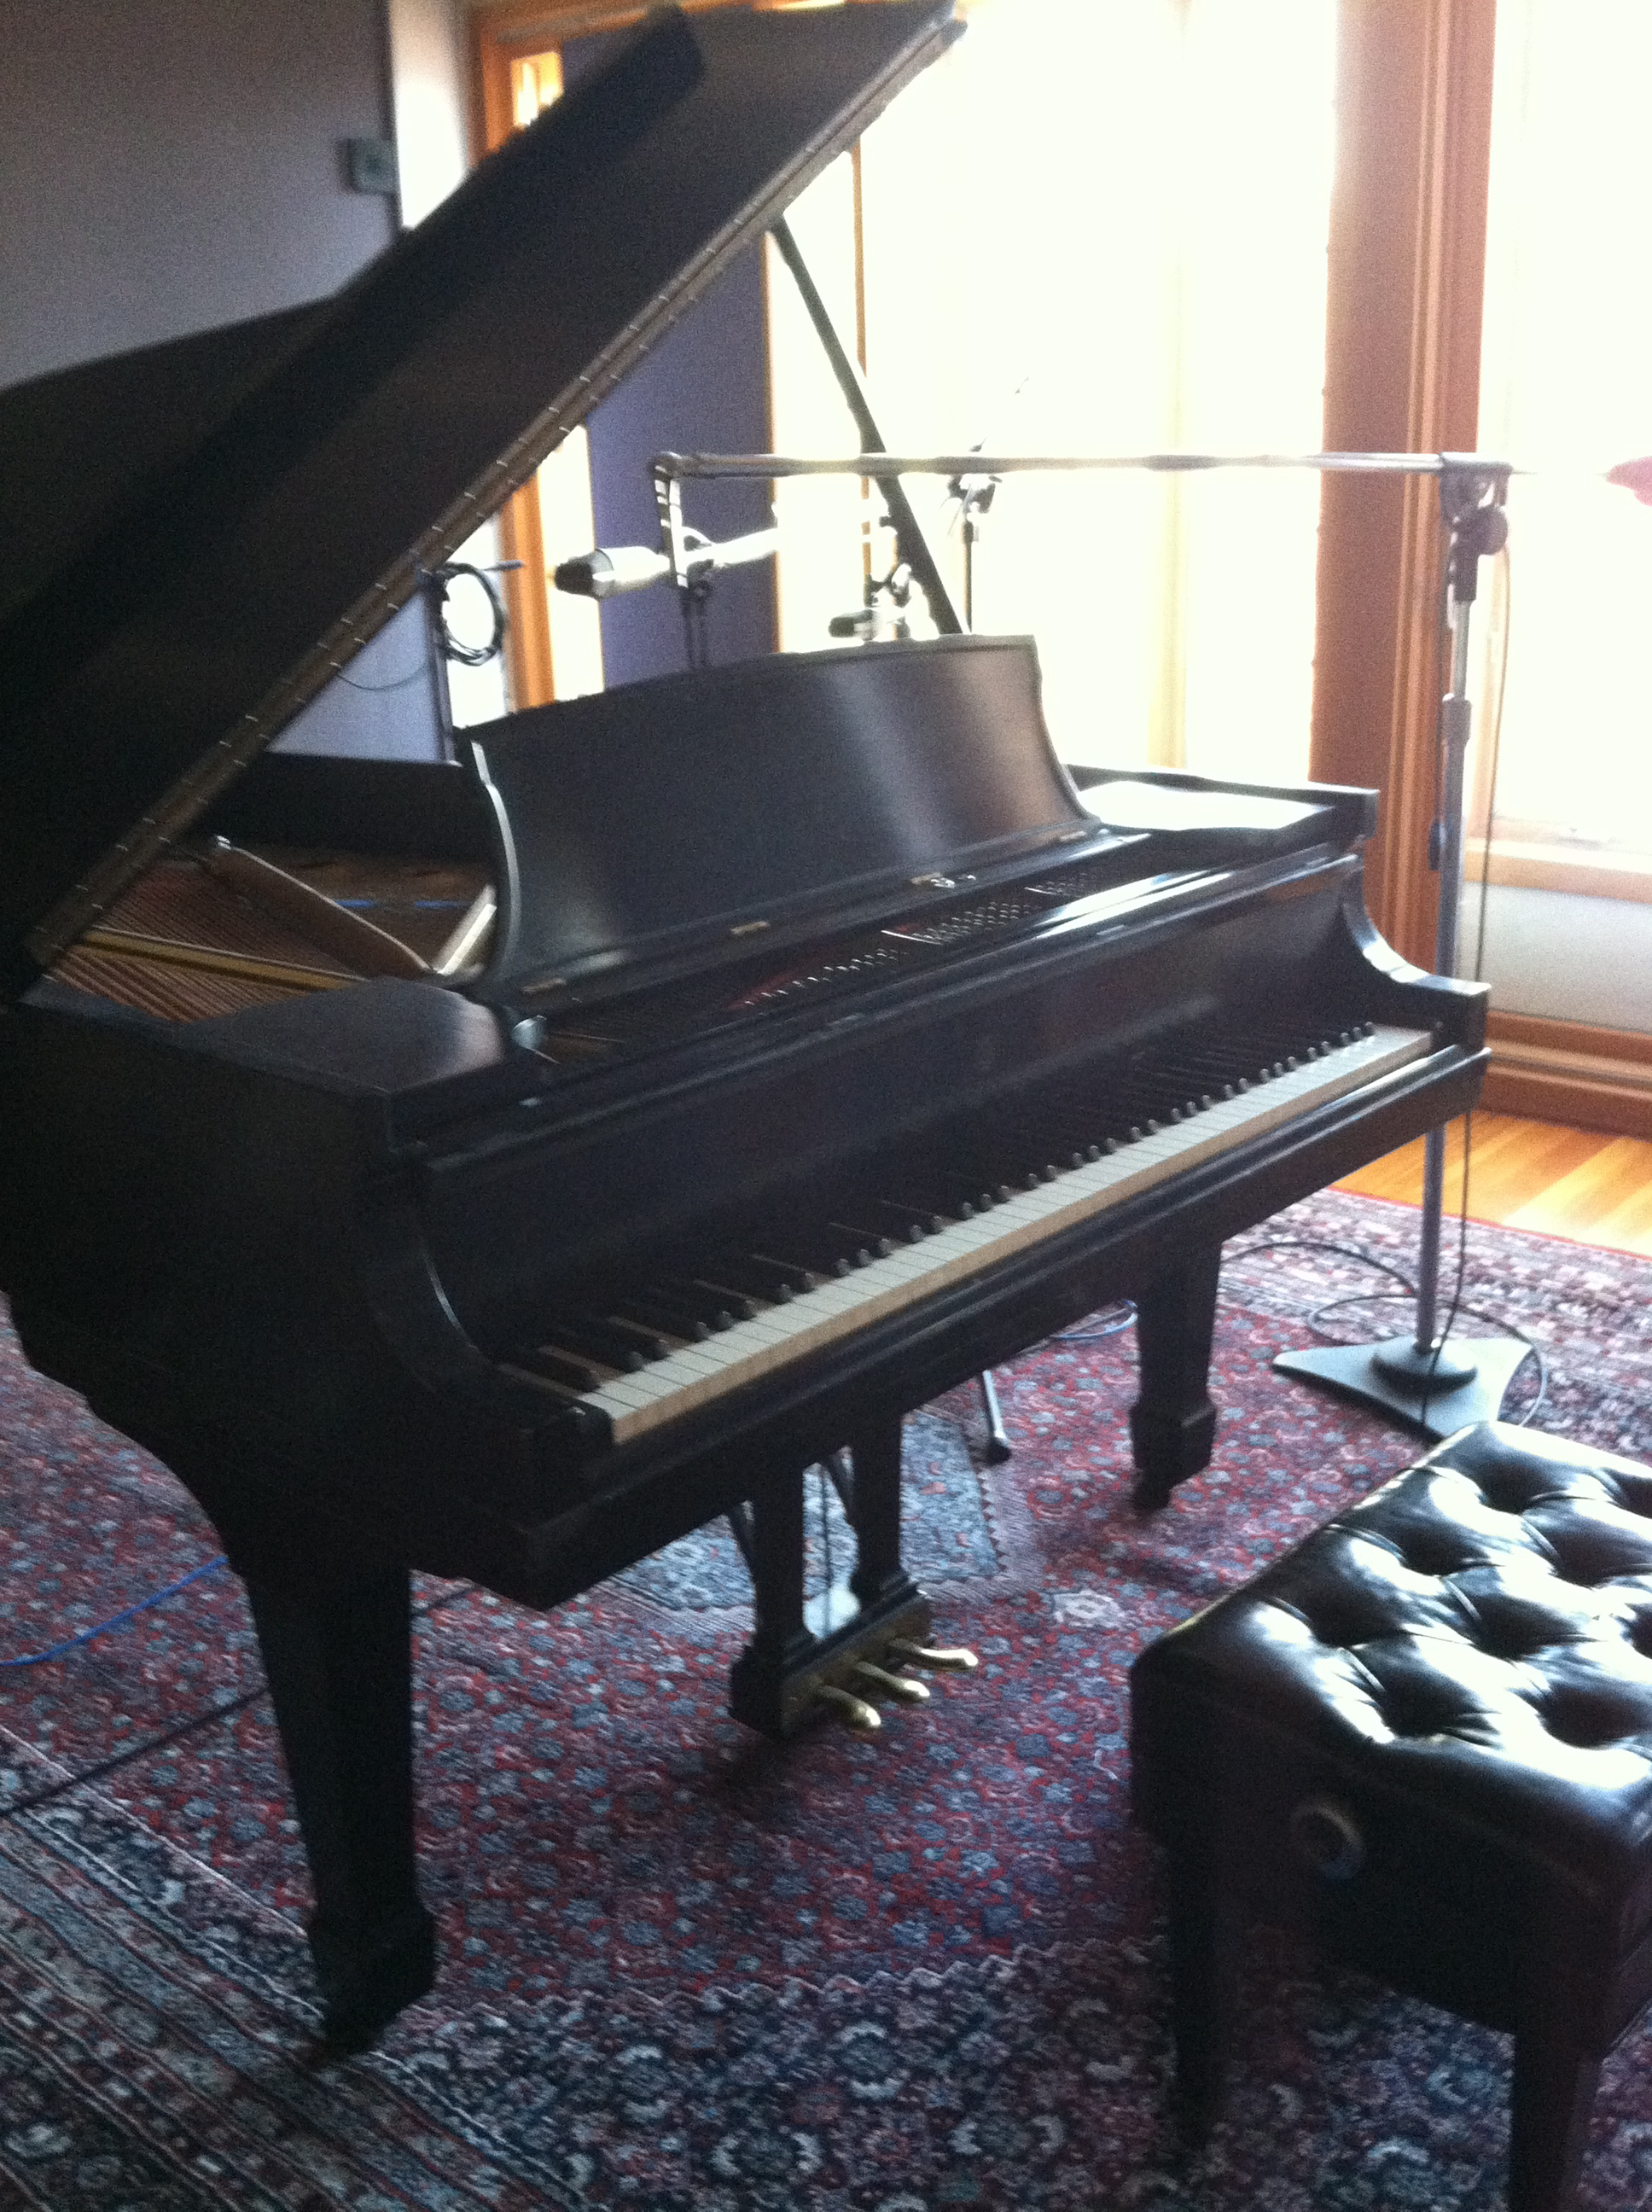 The Steinway B at Imaginary Road Studios.